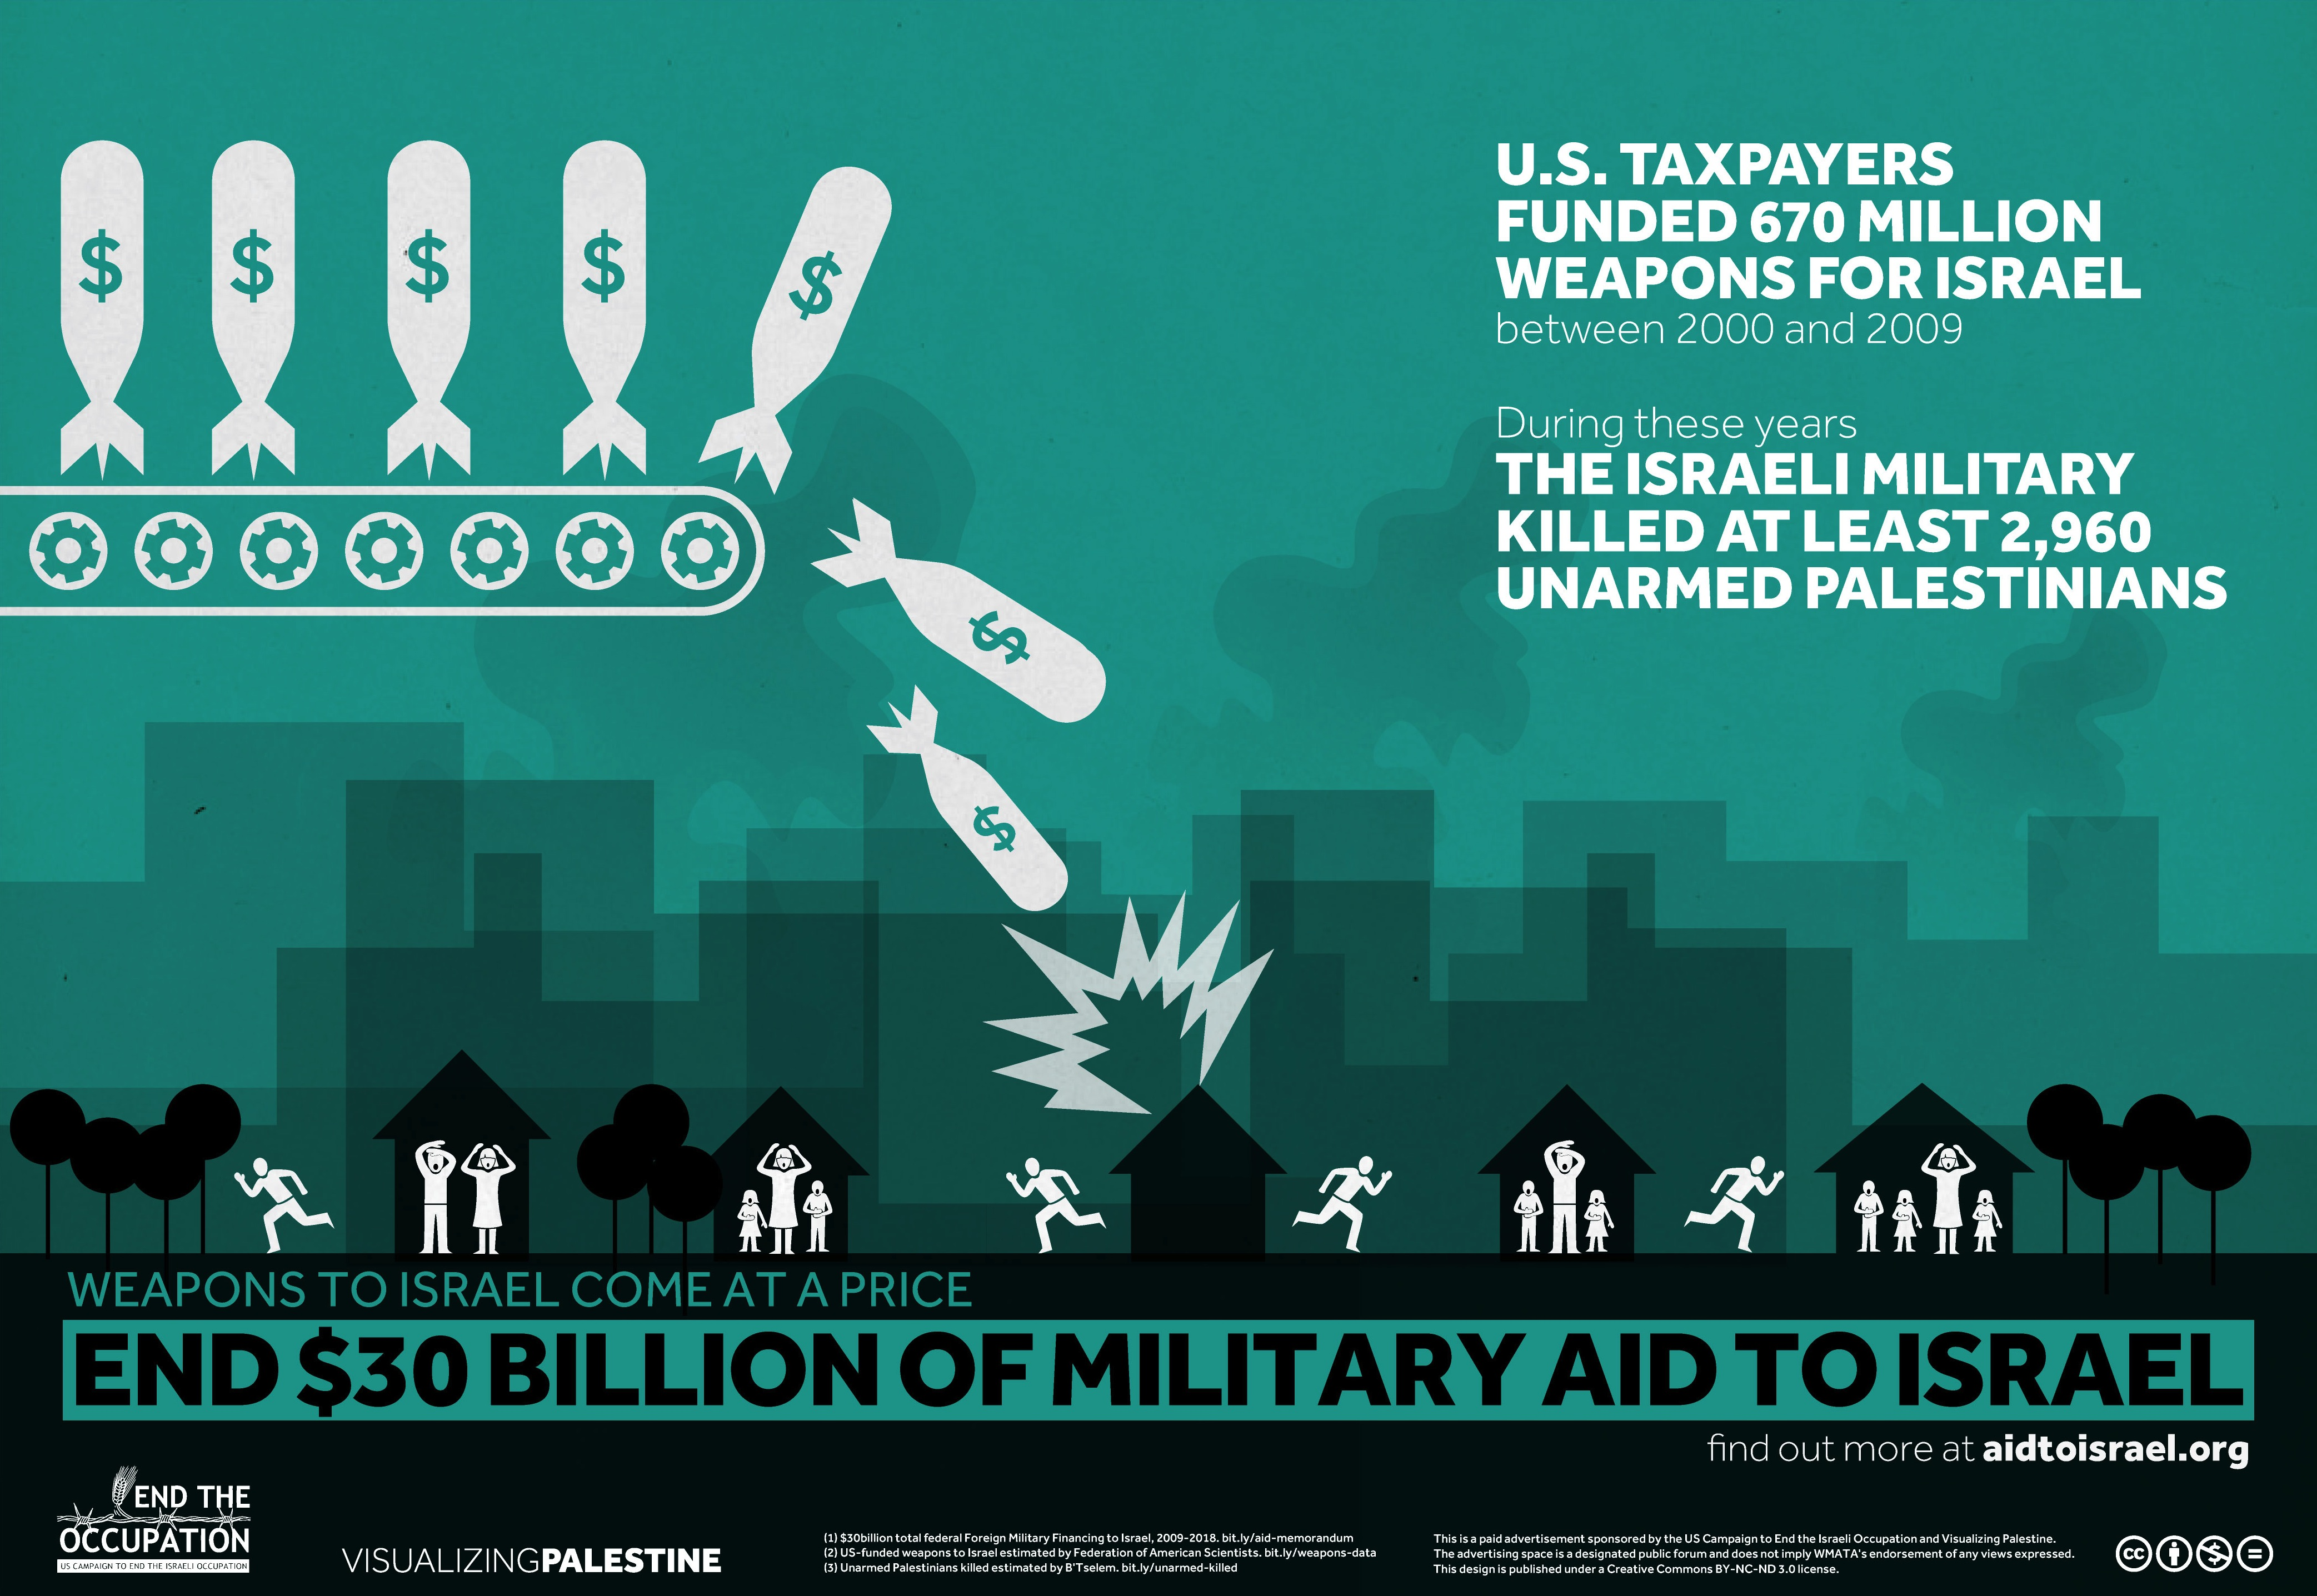 End $30b of US Military Aid to Israel - Weapons